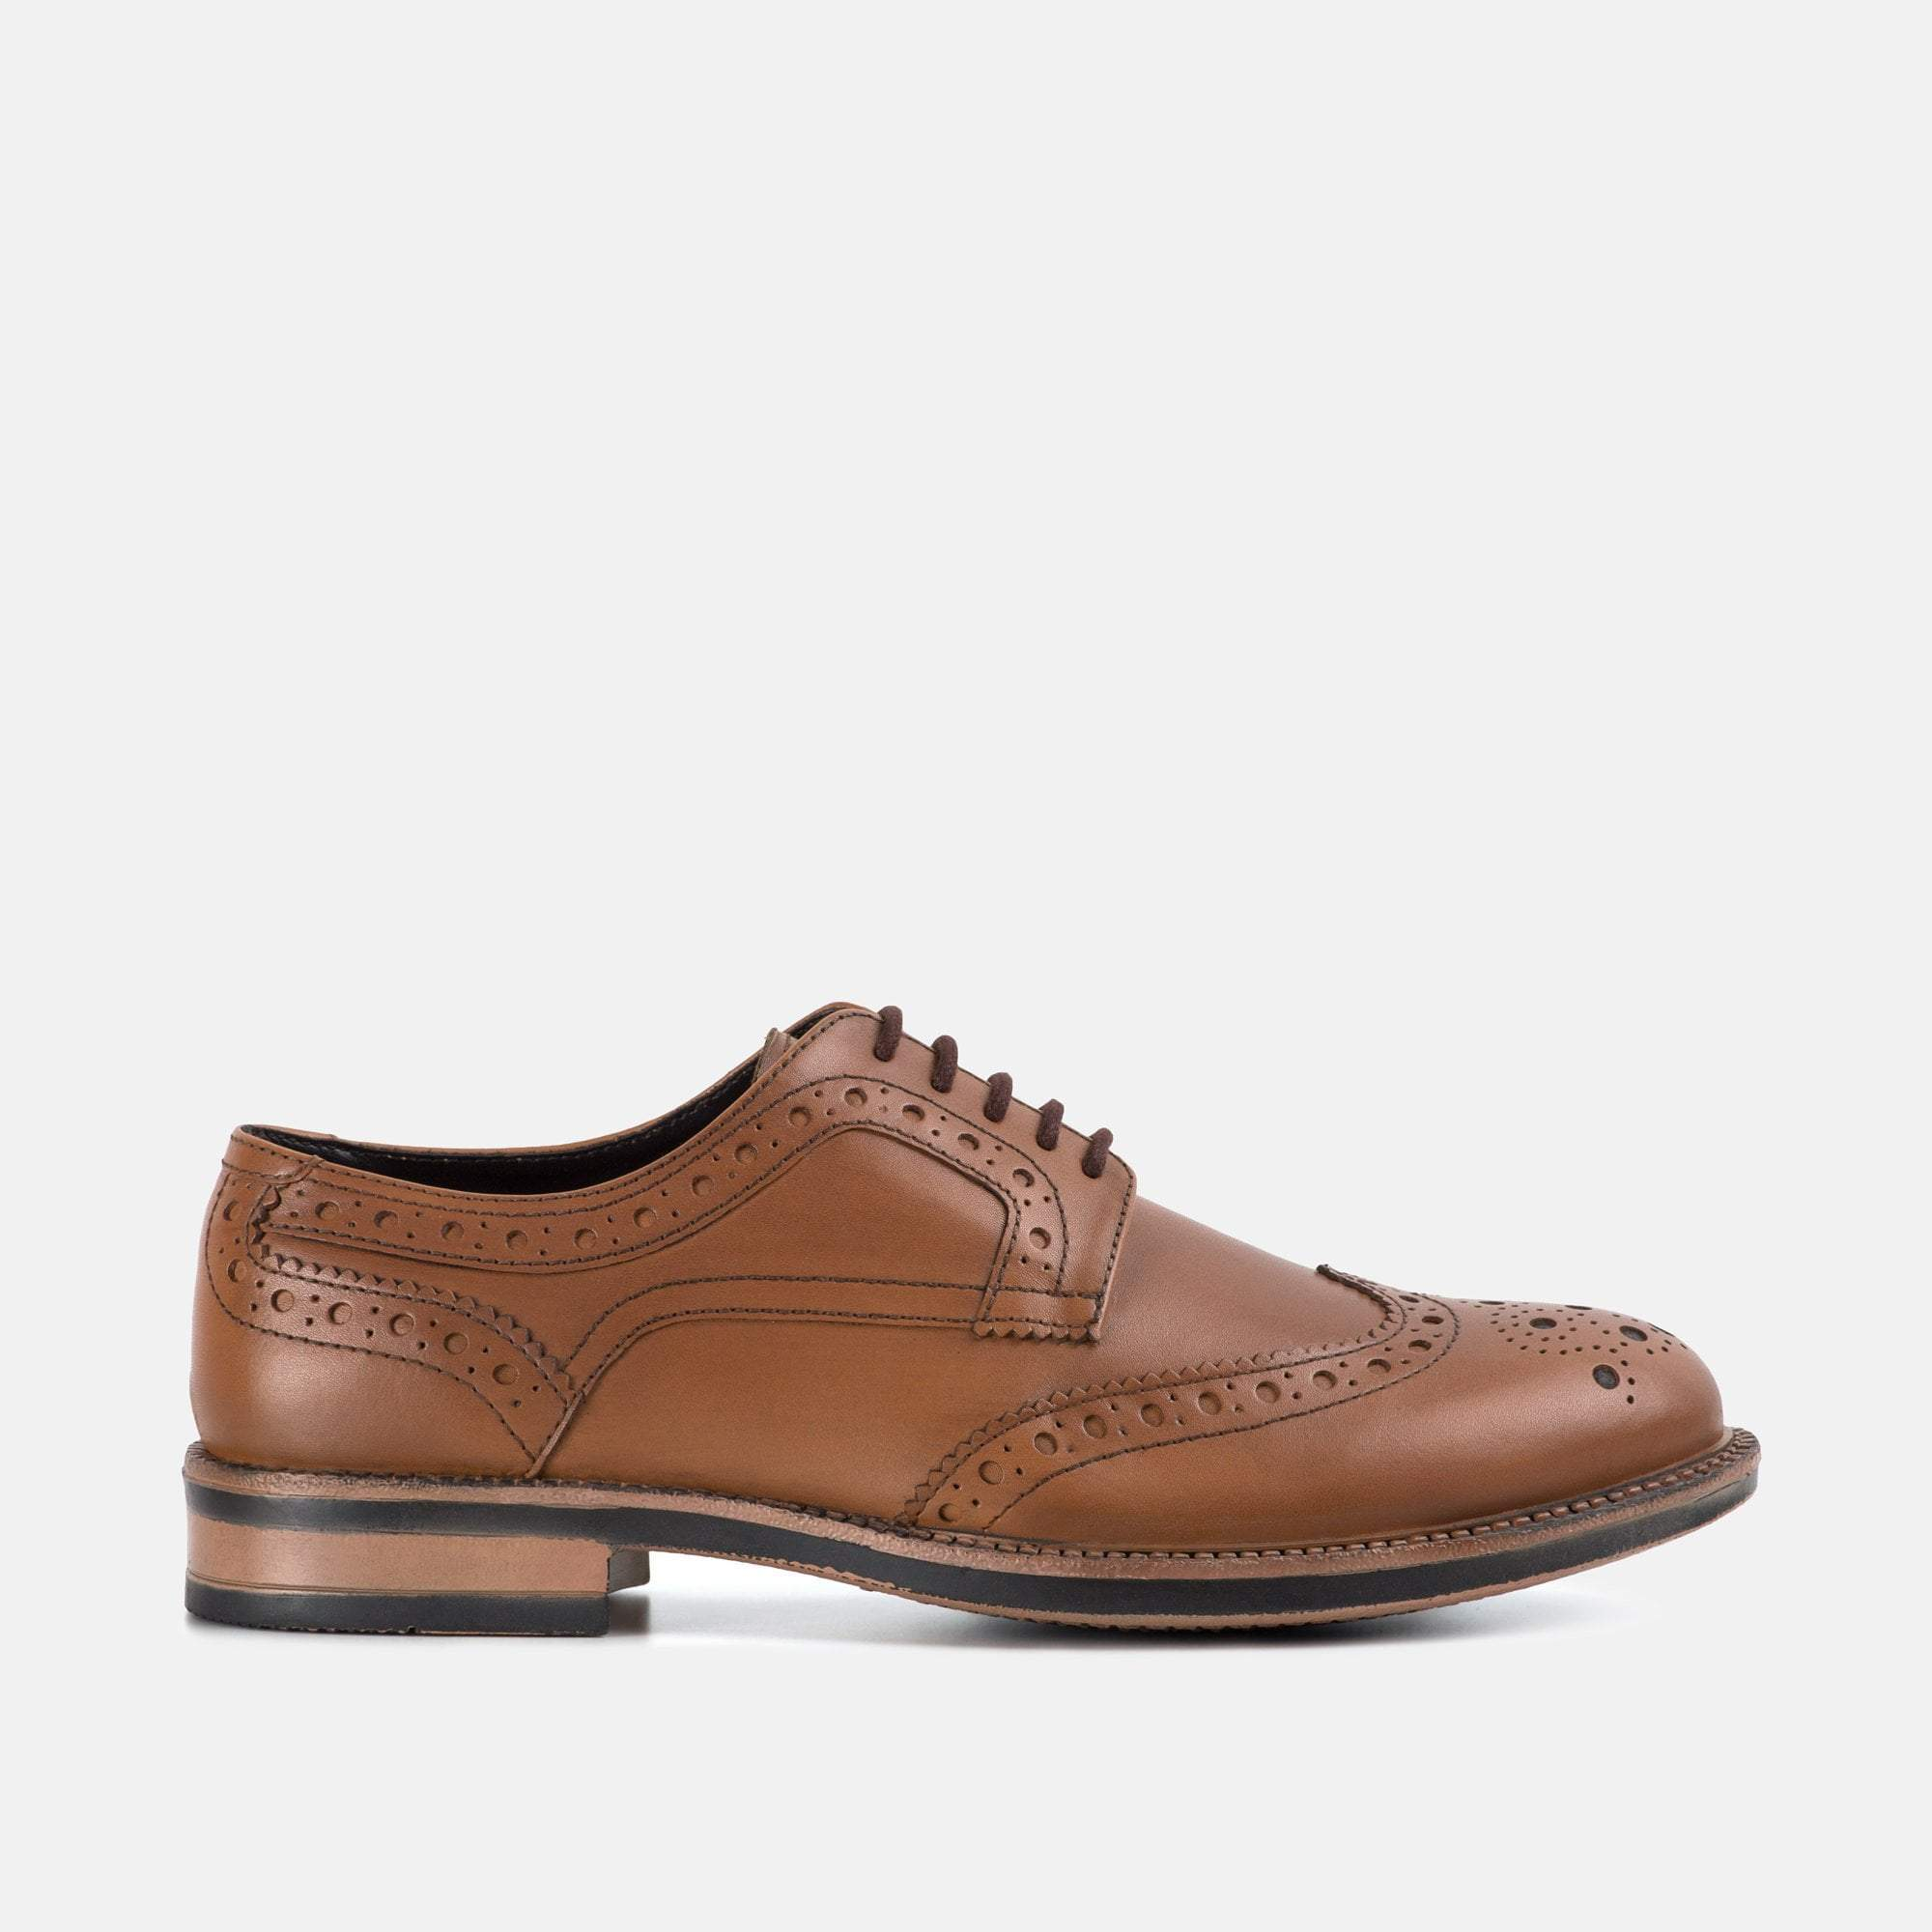 JOHNSON TAN CHUNKY LEATHER DERBY BROGUE SHOE